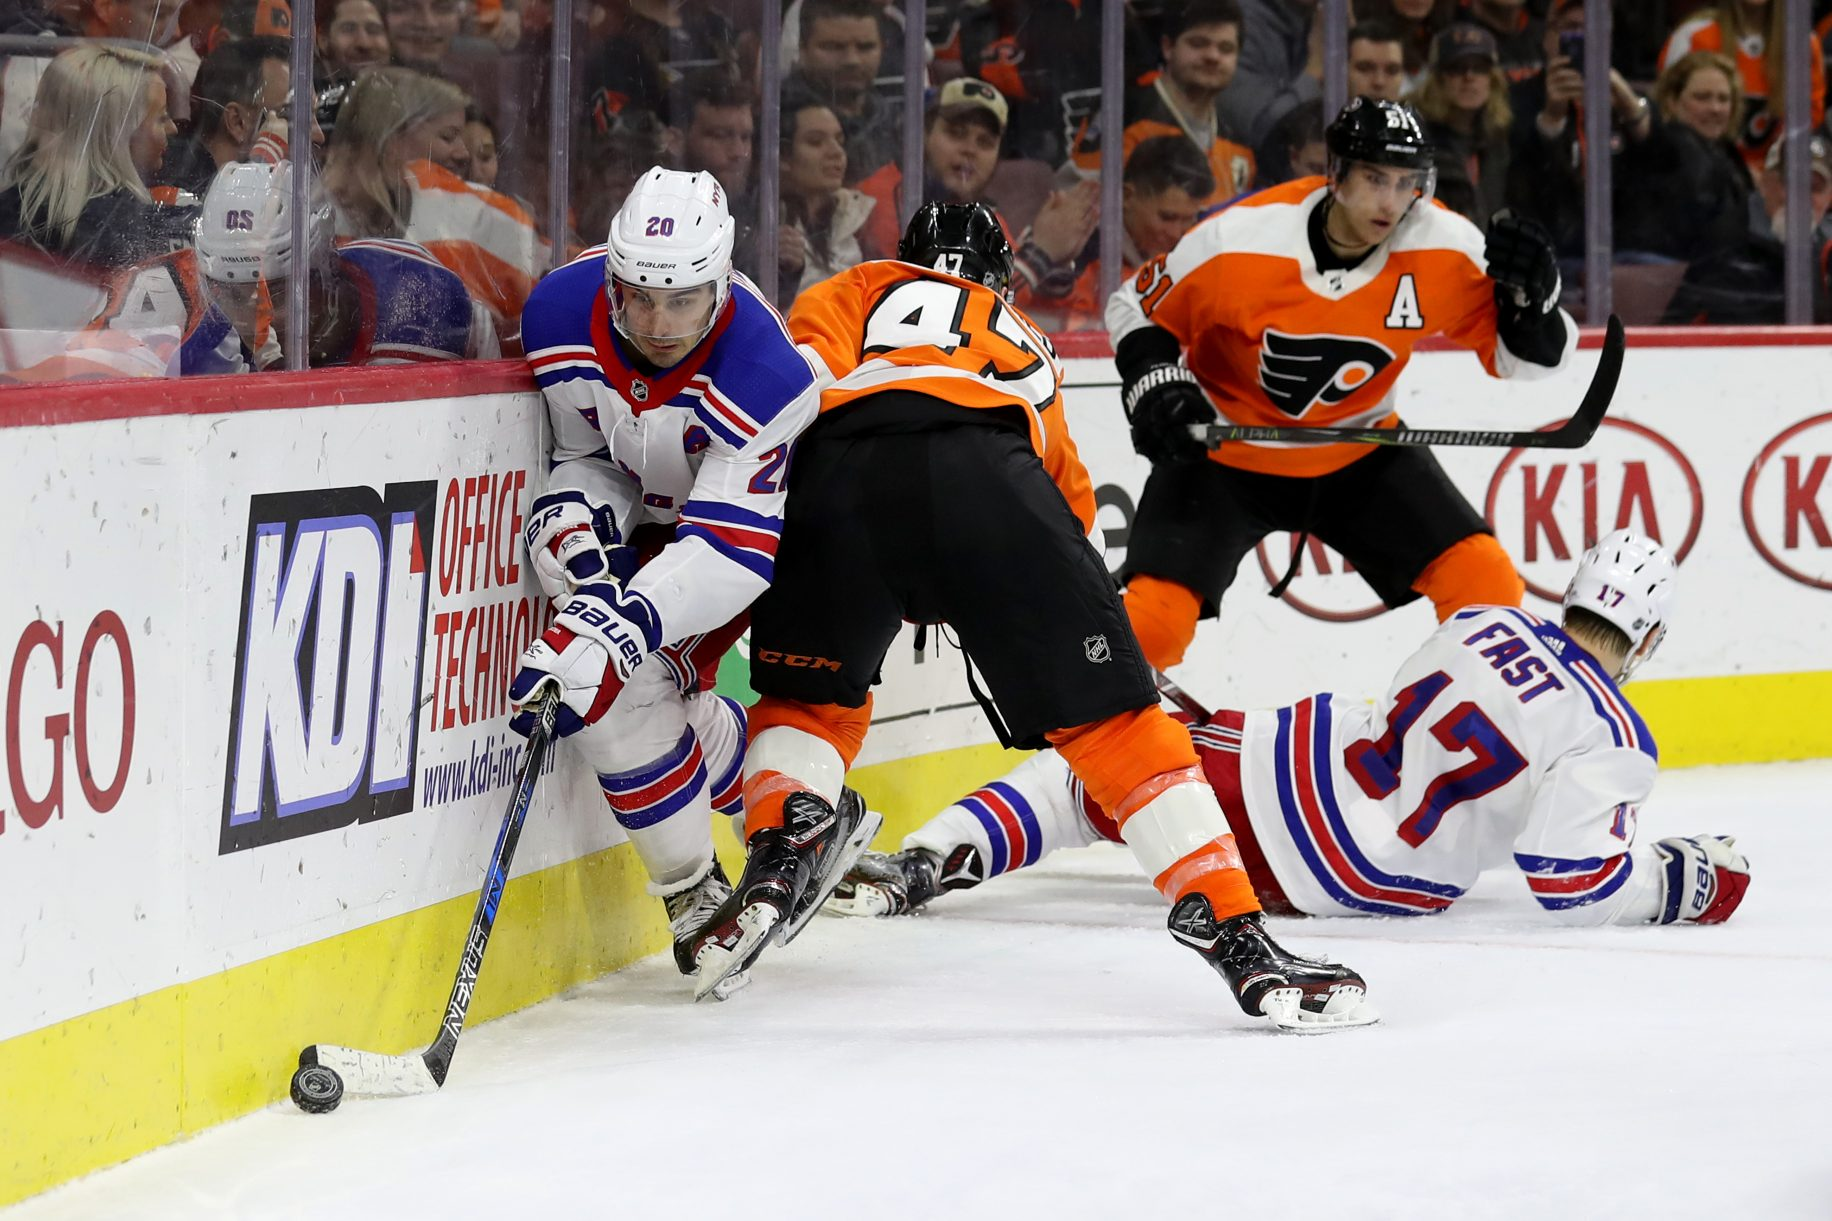 Rangers fall to Flyers